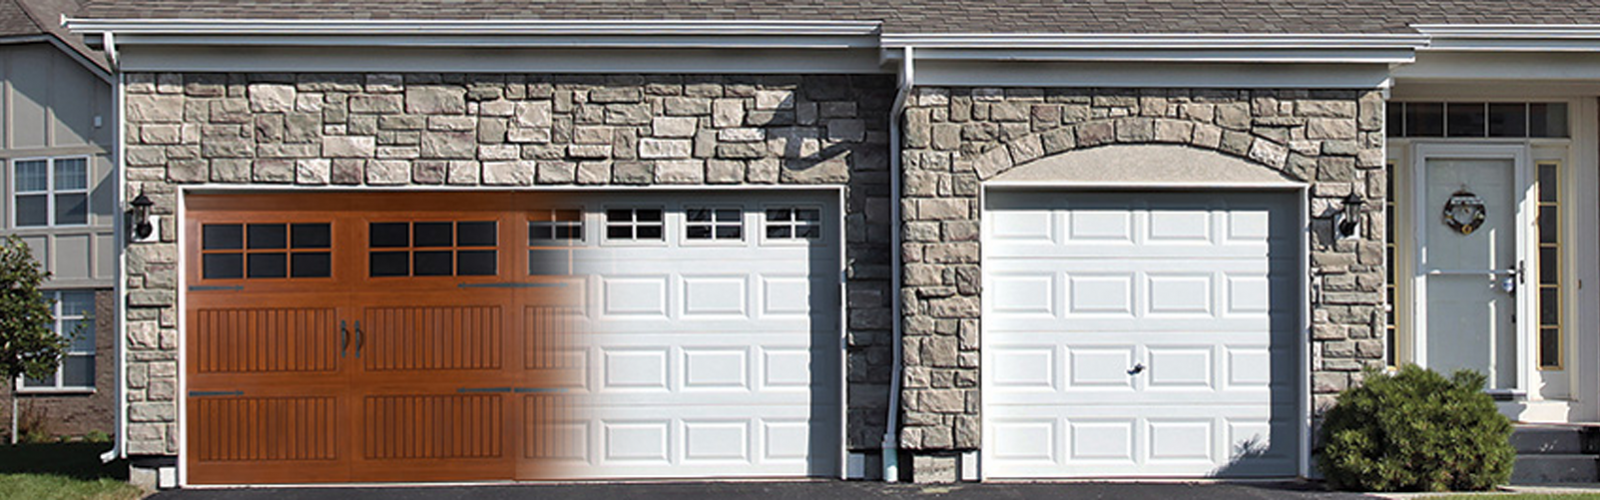 Overhead Door Company Of Houston Garage Door Repair Replacement